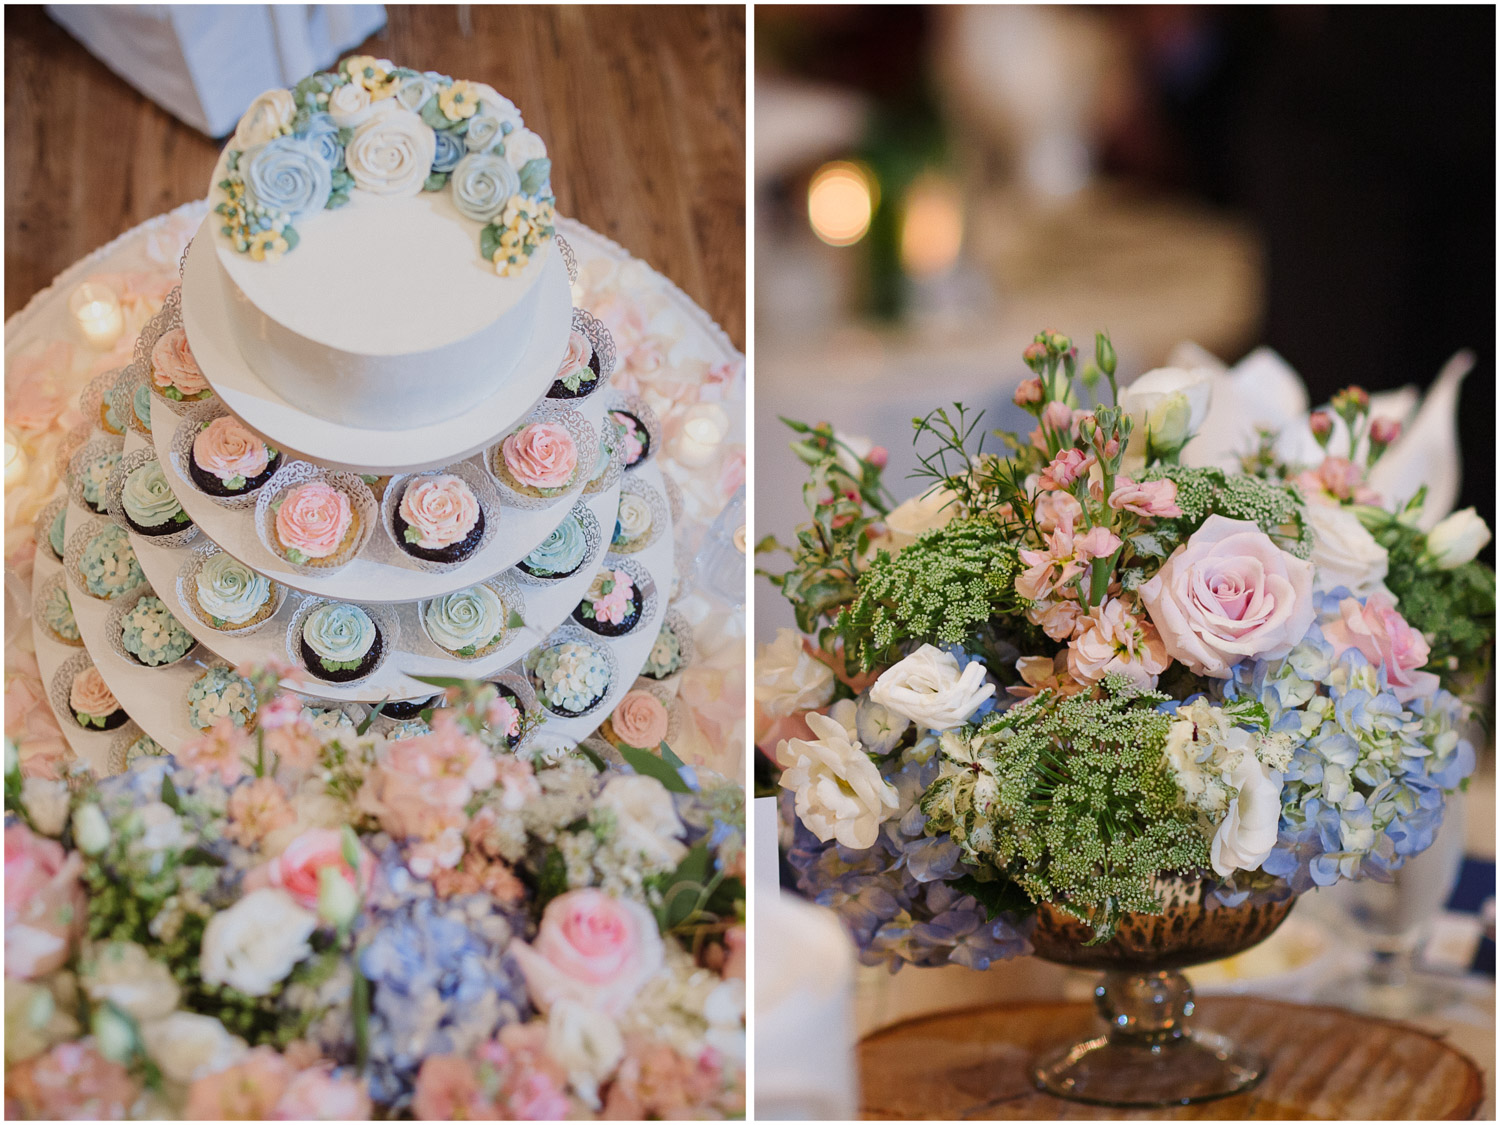 Flower detail and cupcakes at Old Mill Toronto wedding